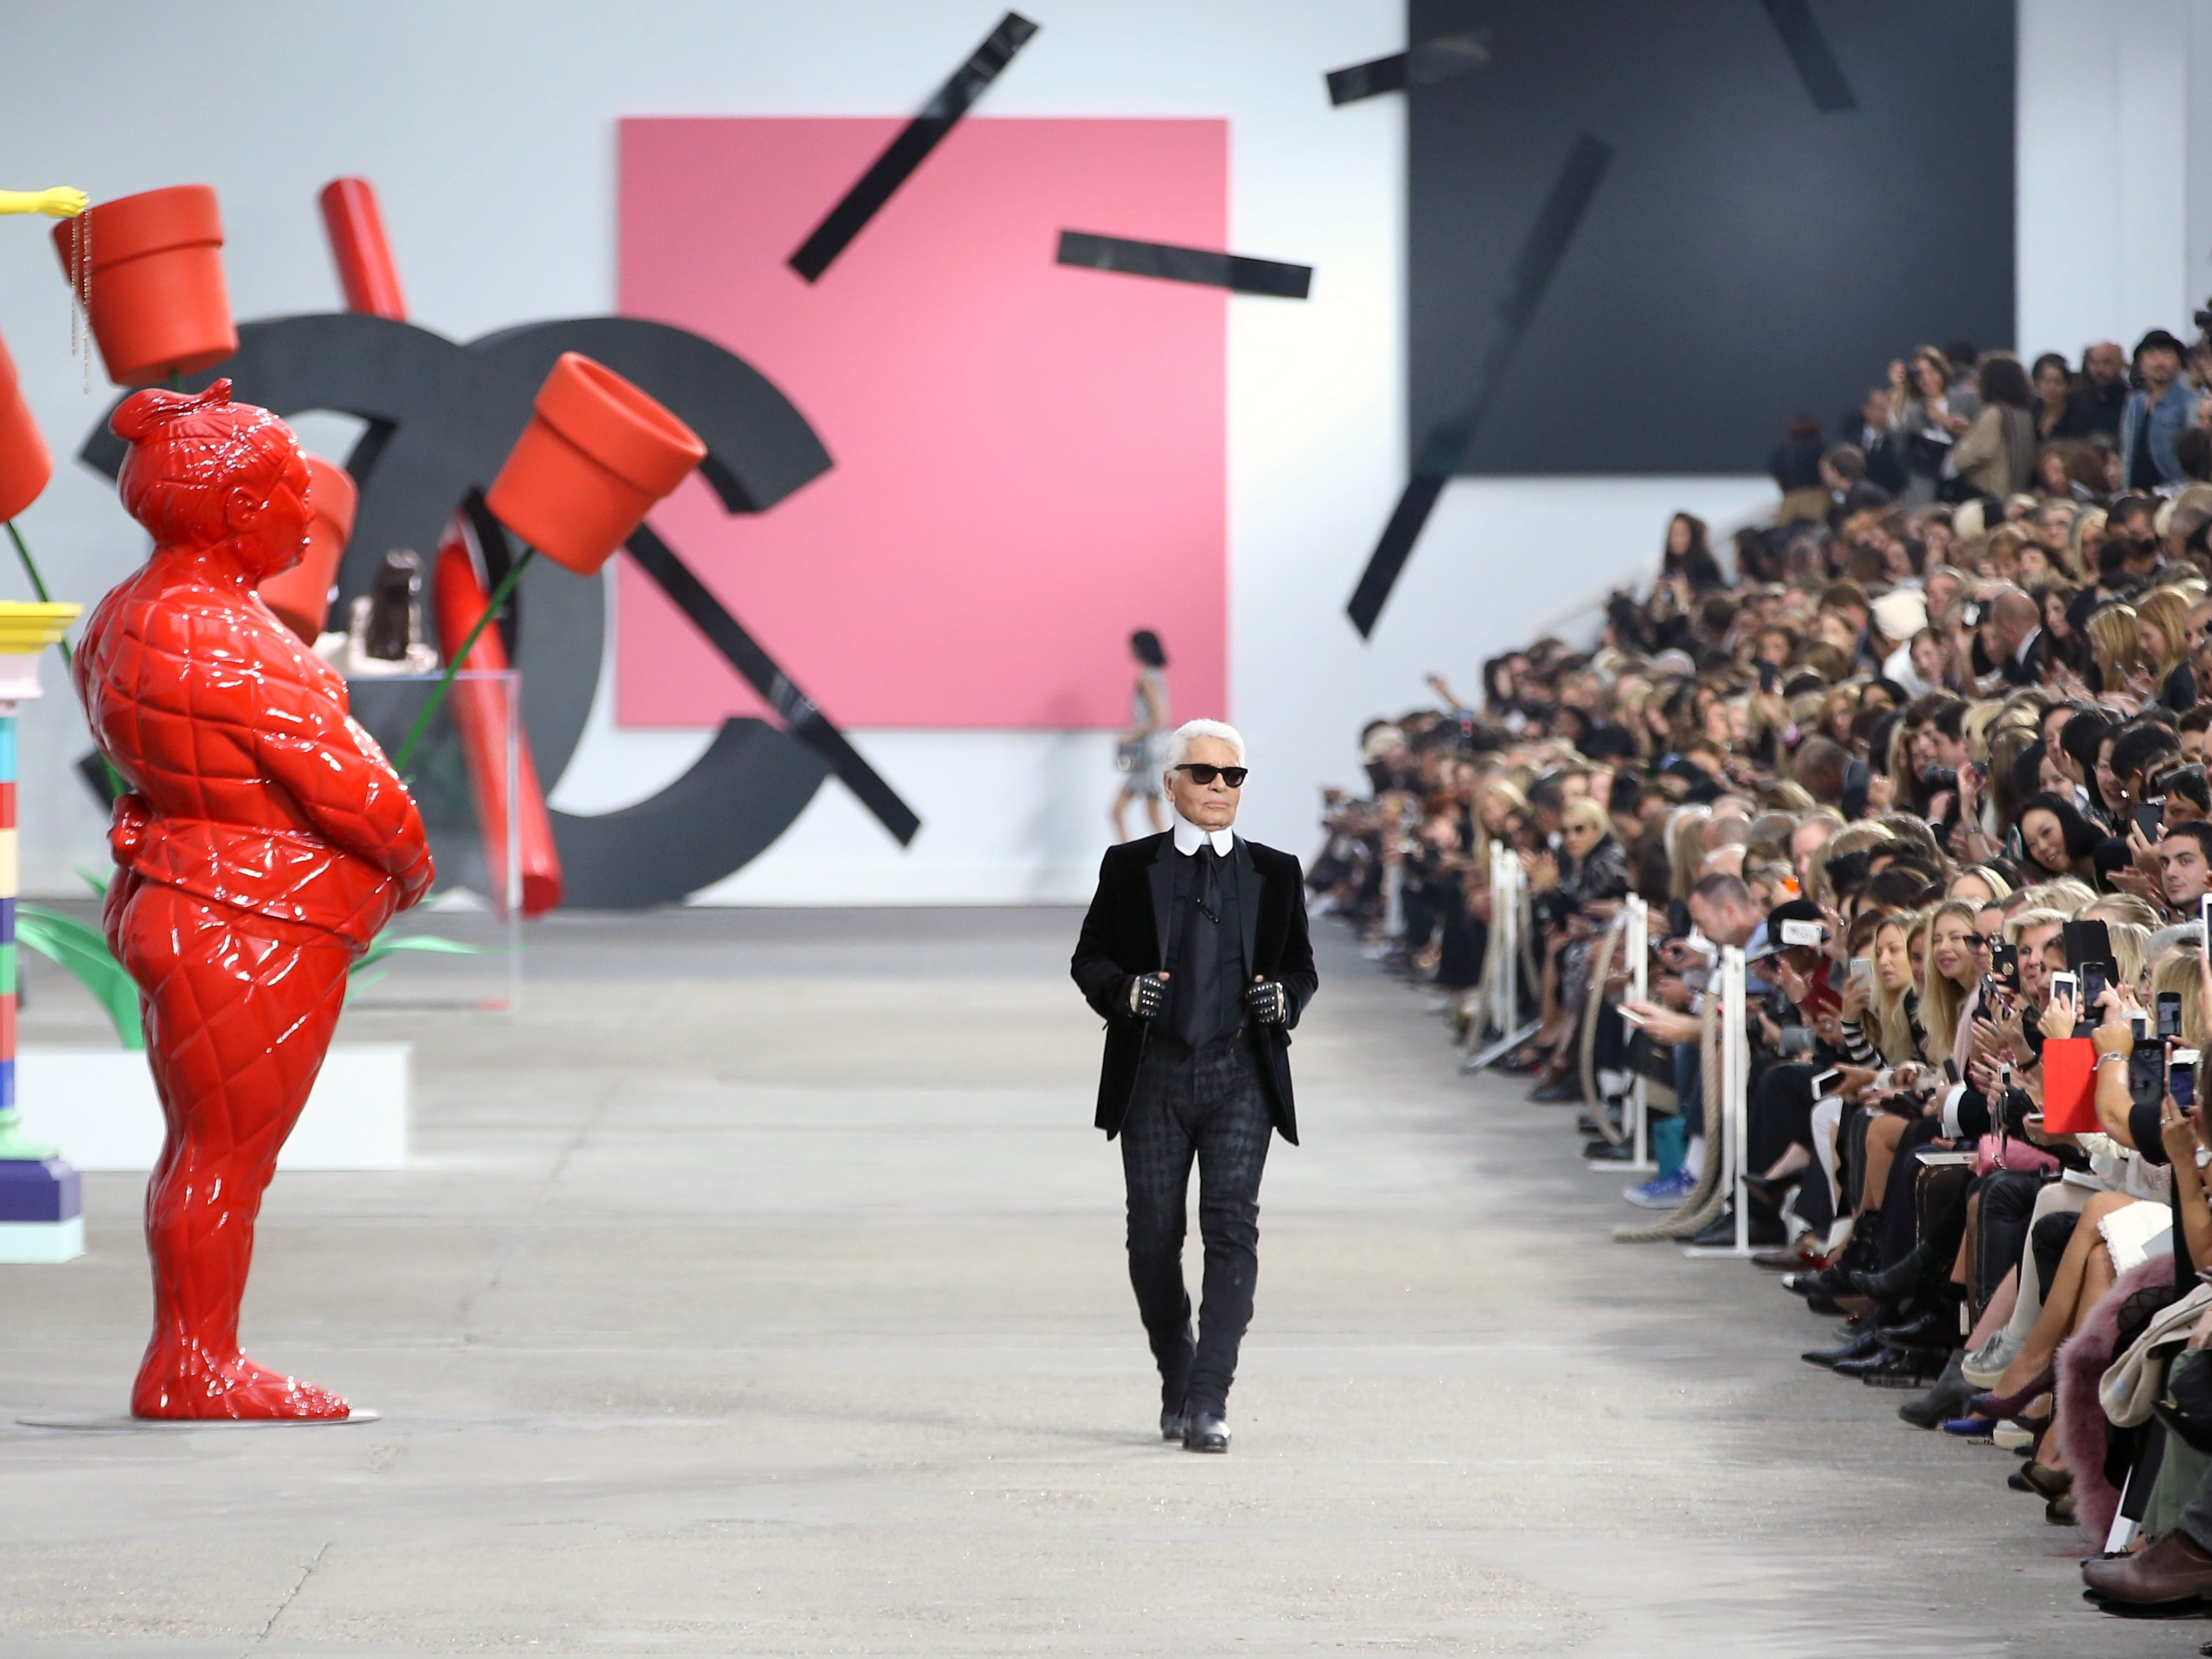 Karl Lagerfeld takes to the catwalk at the end of the Chanel fashion show from the Spring/Summer 2014 Ready to Wear Collection during the Paris Fashion Week, in Paris, October 1, 2013.